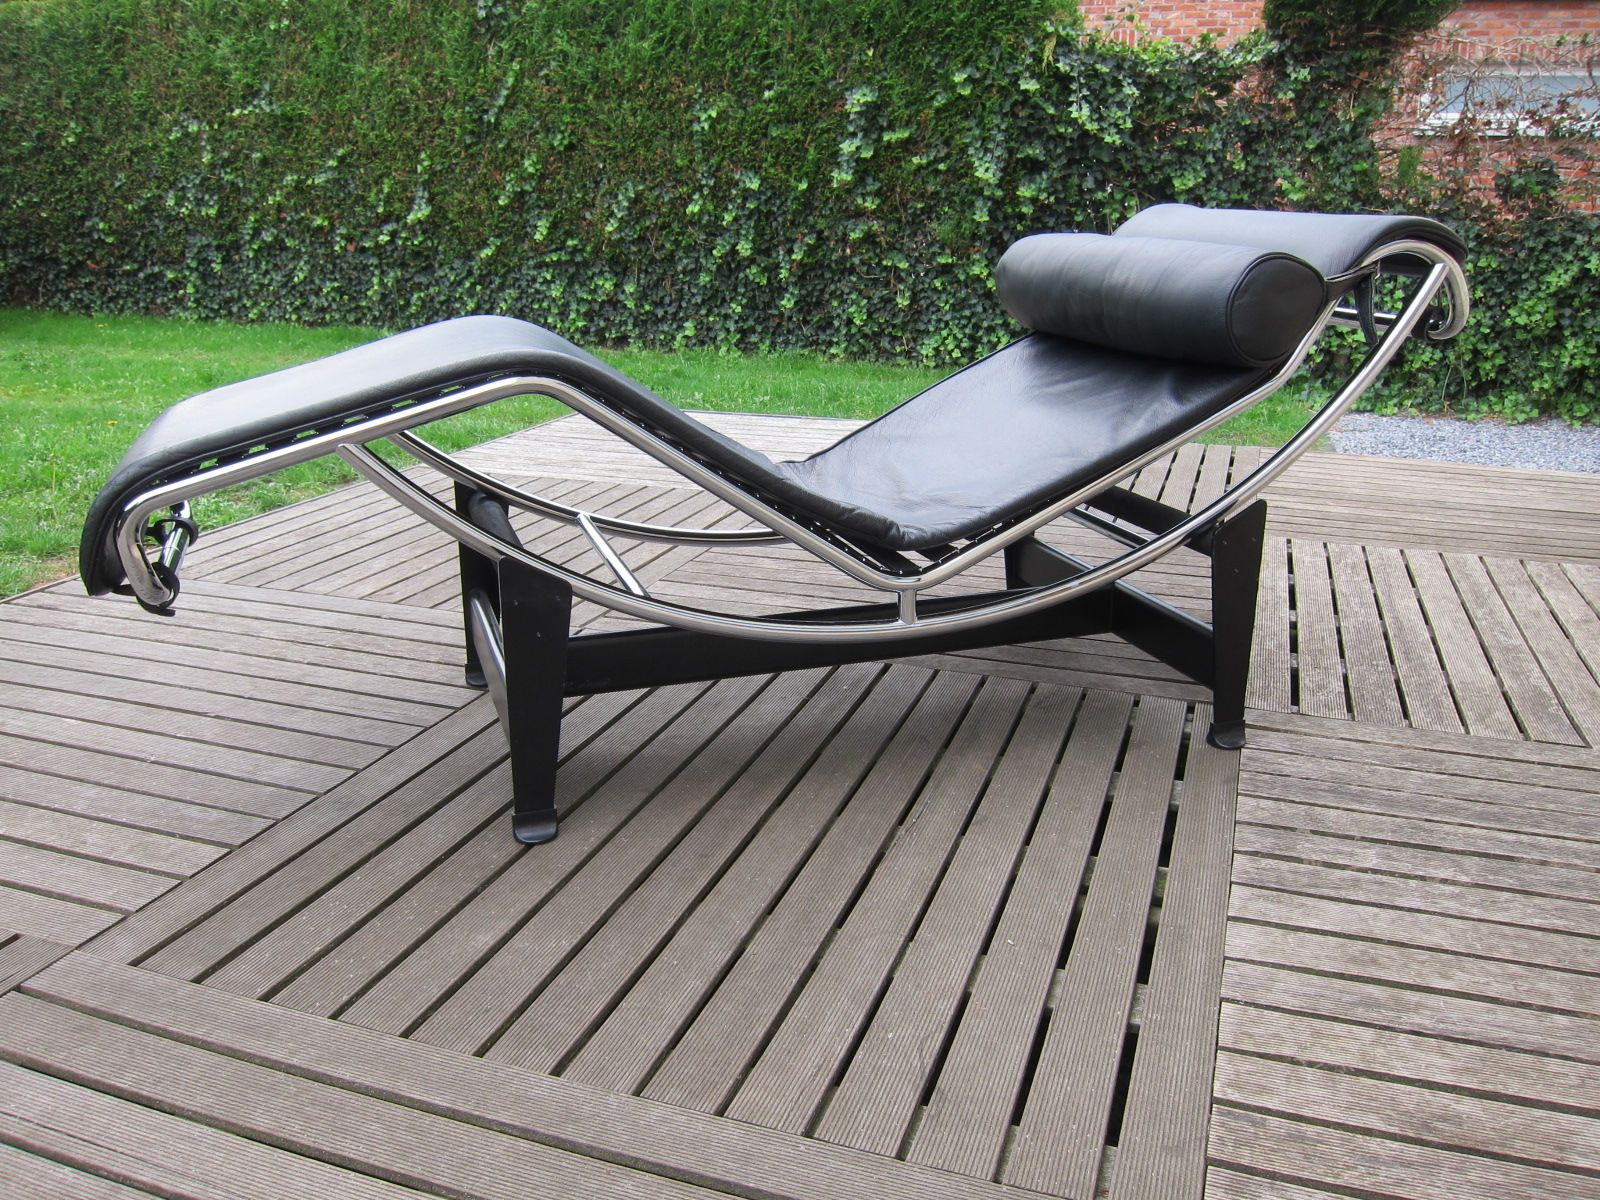 Vintage lc4 chaise longue by le corbusier pierre for Chaise longue lc4 le corbusier 1928